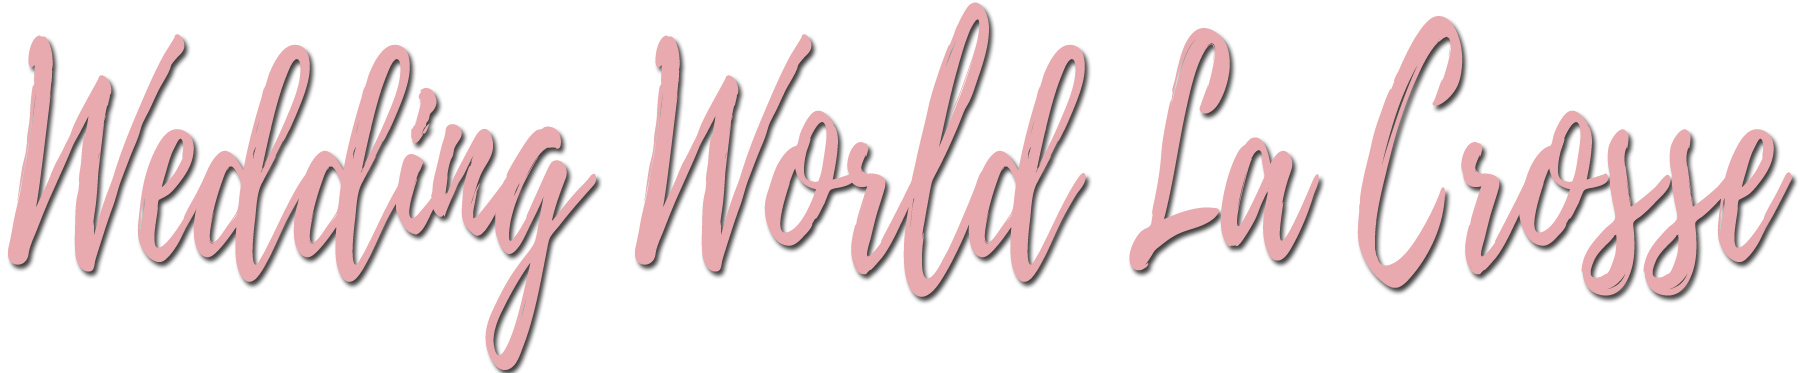 Wedding World La Crosse logo